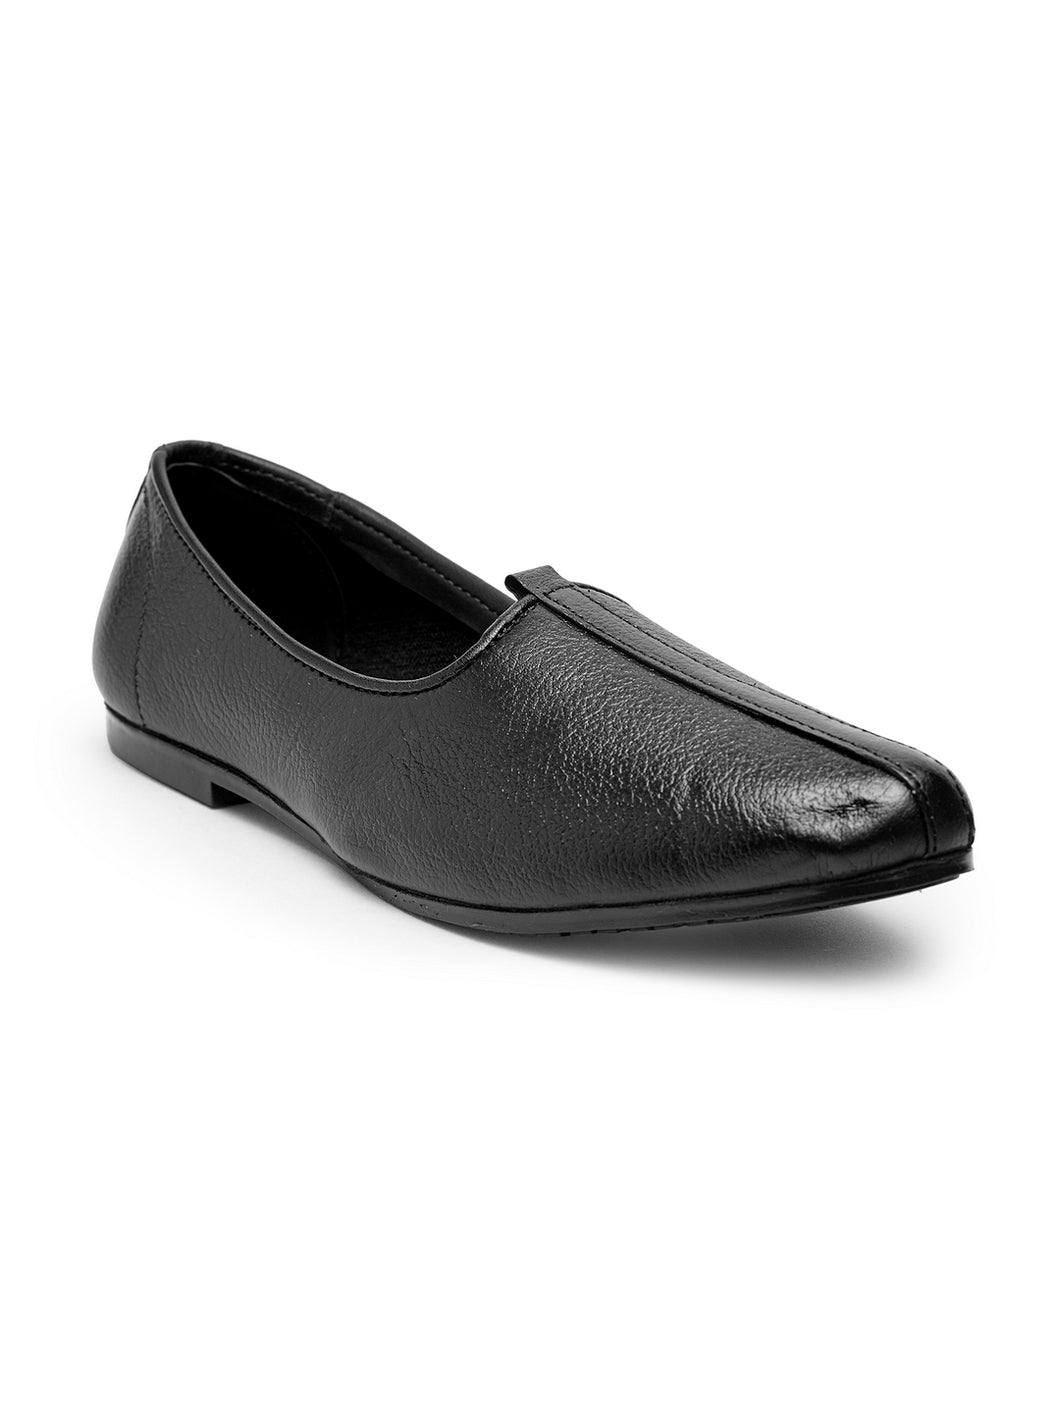 Teakwood Men Black Leather Mojaris||Men's Black Traditional Leather Mojari (Jutti/Loafers)